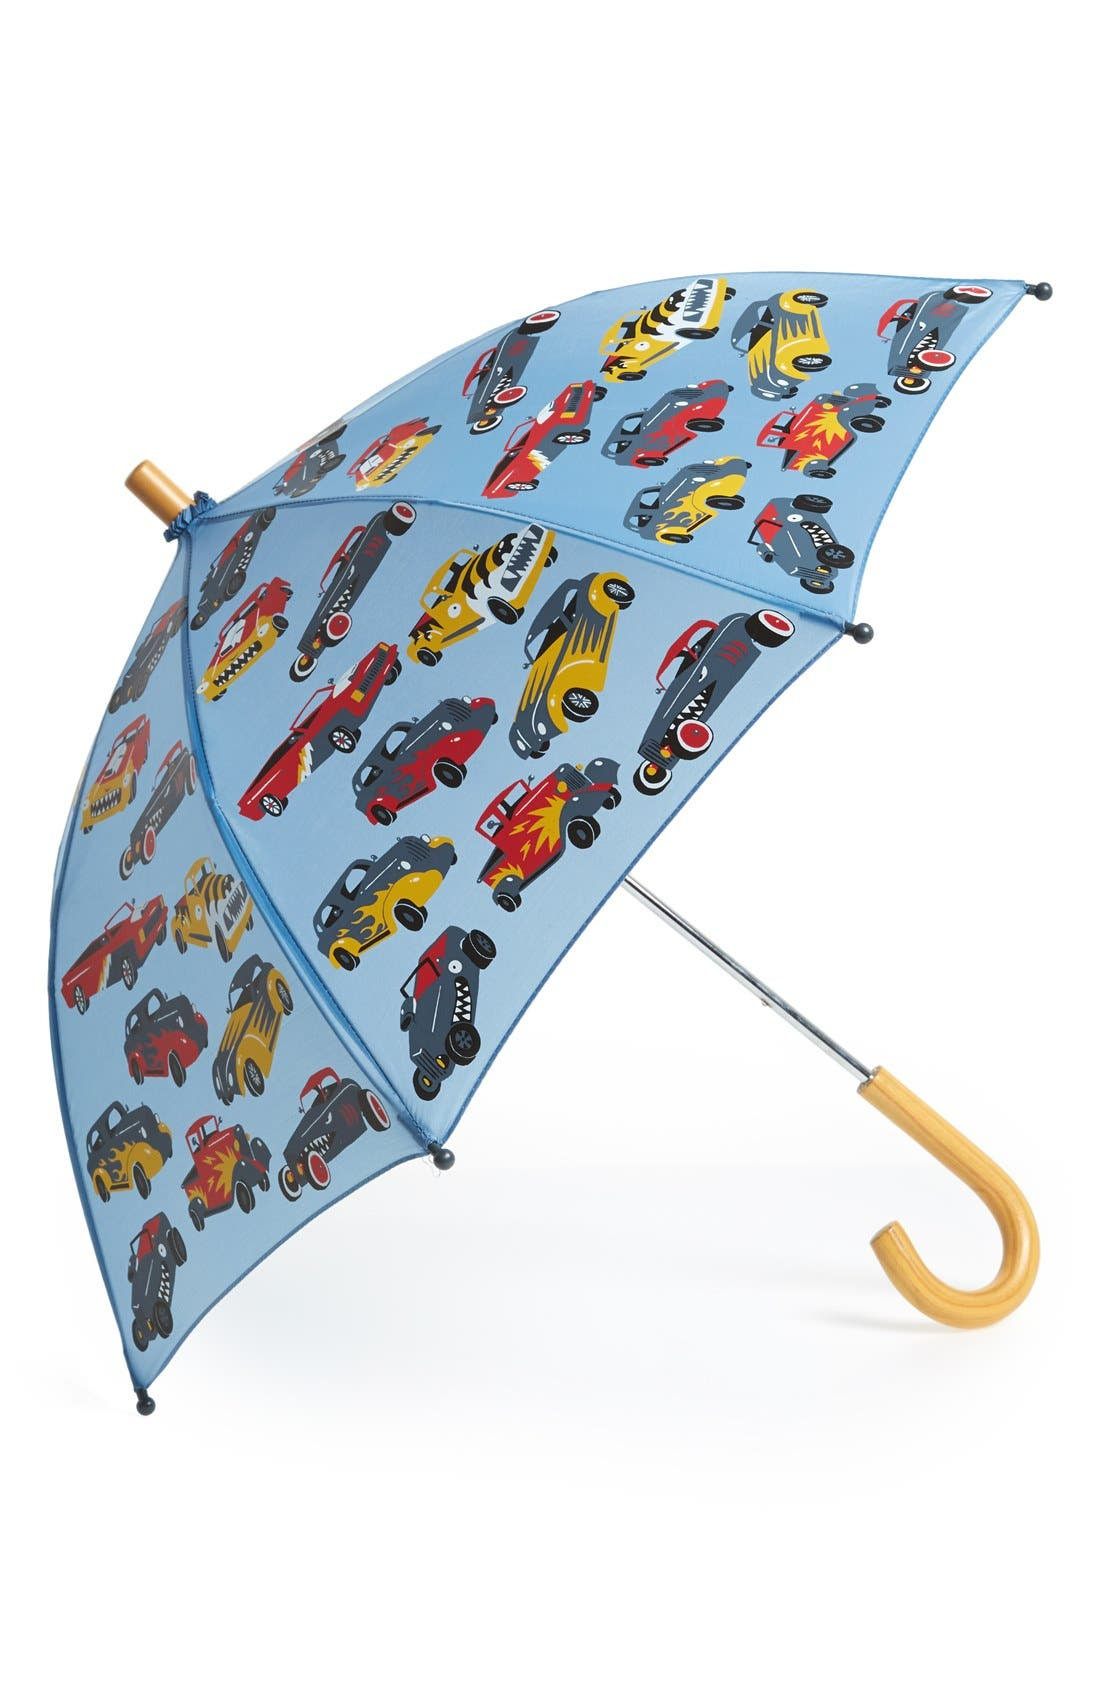 Main Image - Hatley 'Hot Rods' Print Umbrella (Kids)